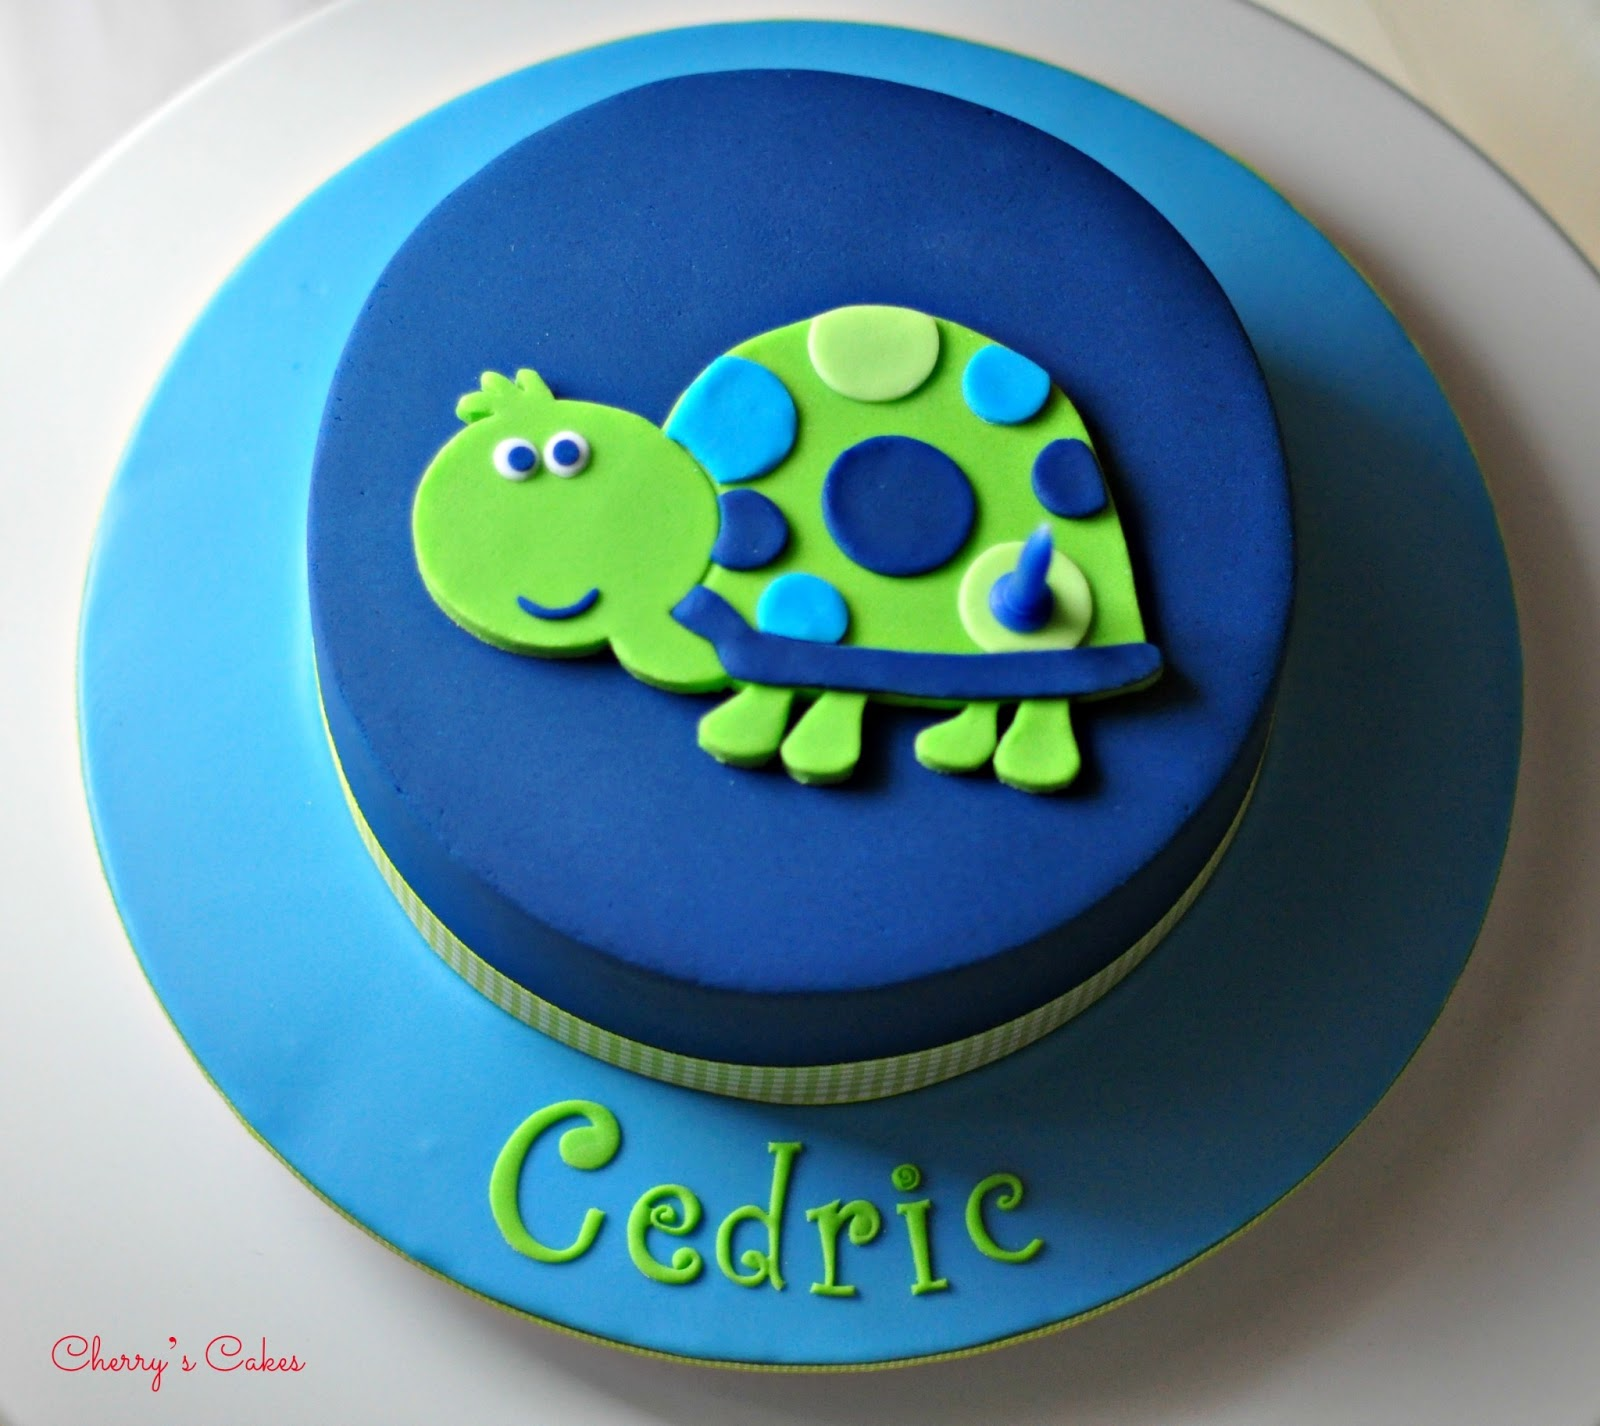 Cherry's Cakes: Cedric & His Turtle - photo#20